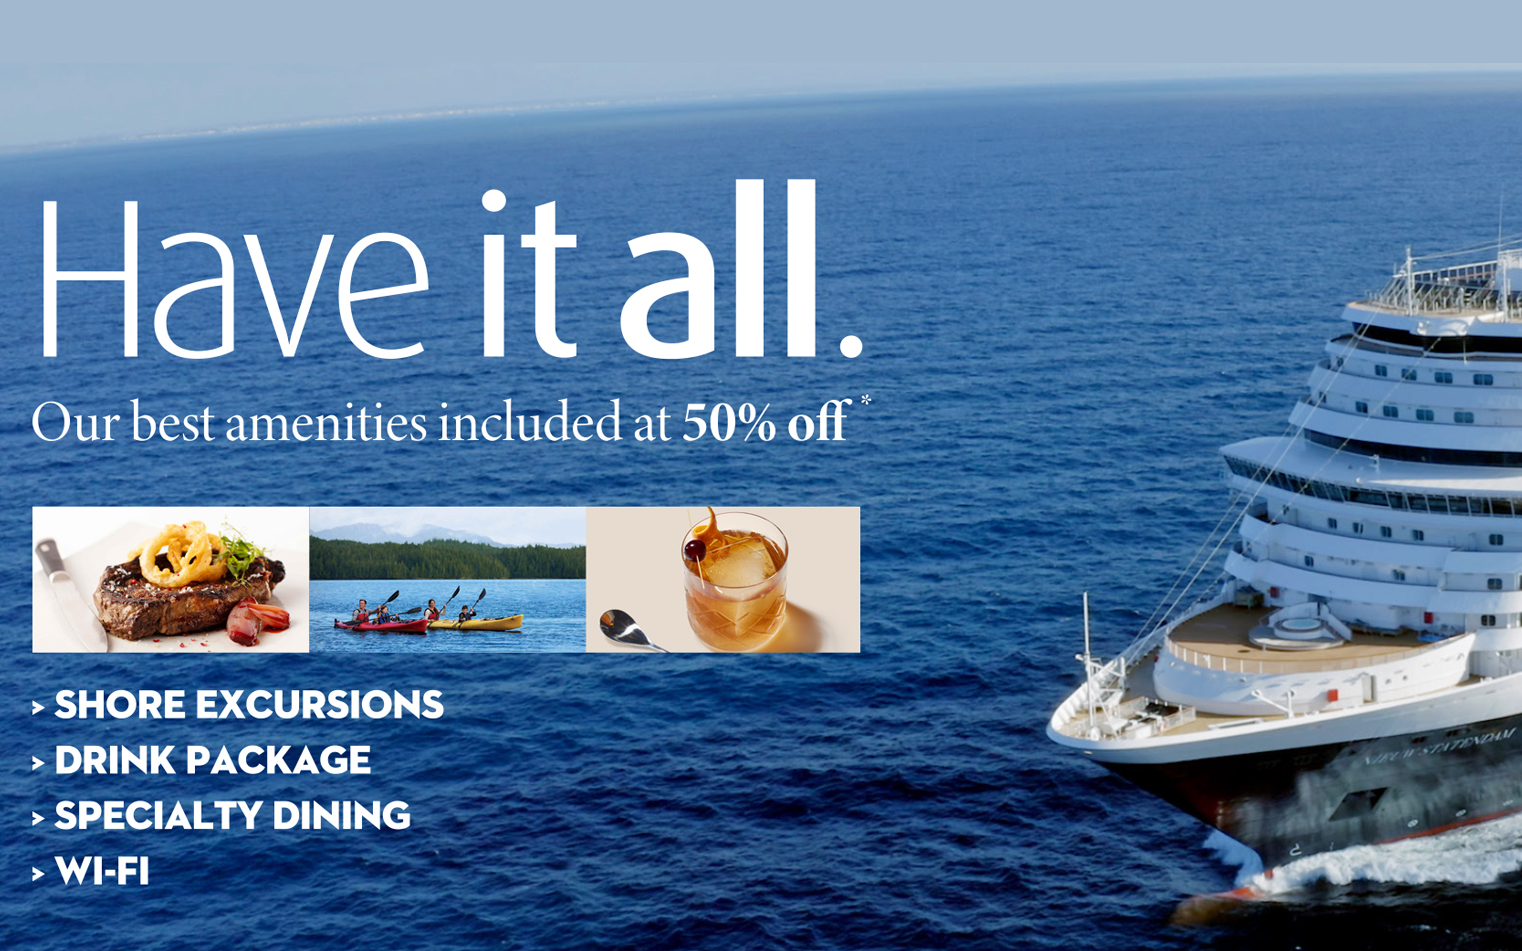 Have it All with Holland America - The Best Amenities included at 50% Off*